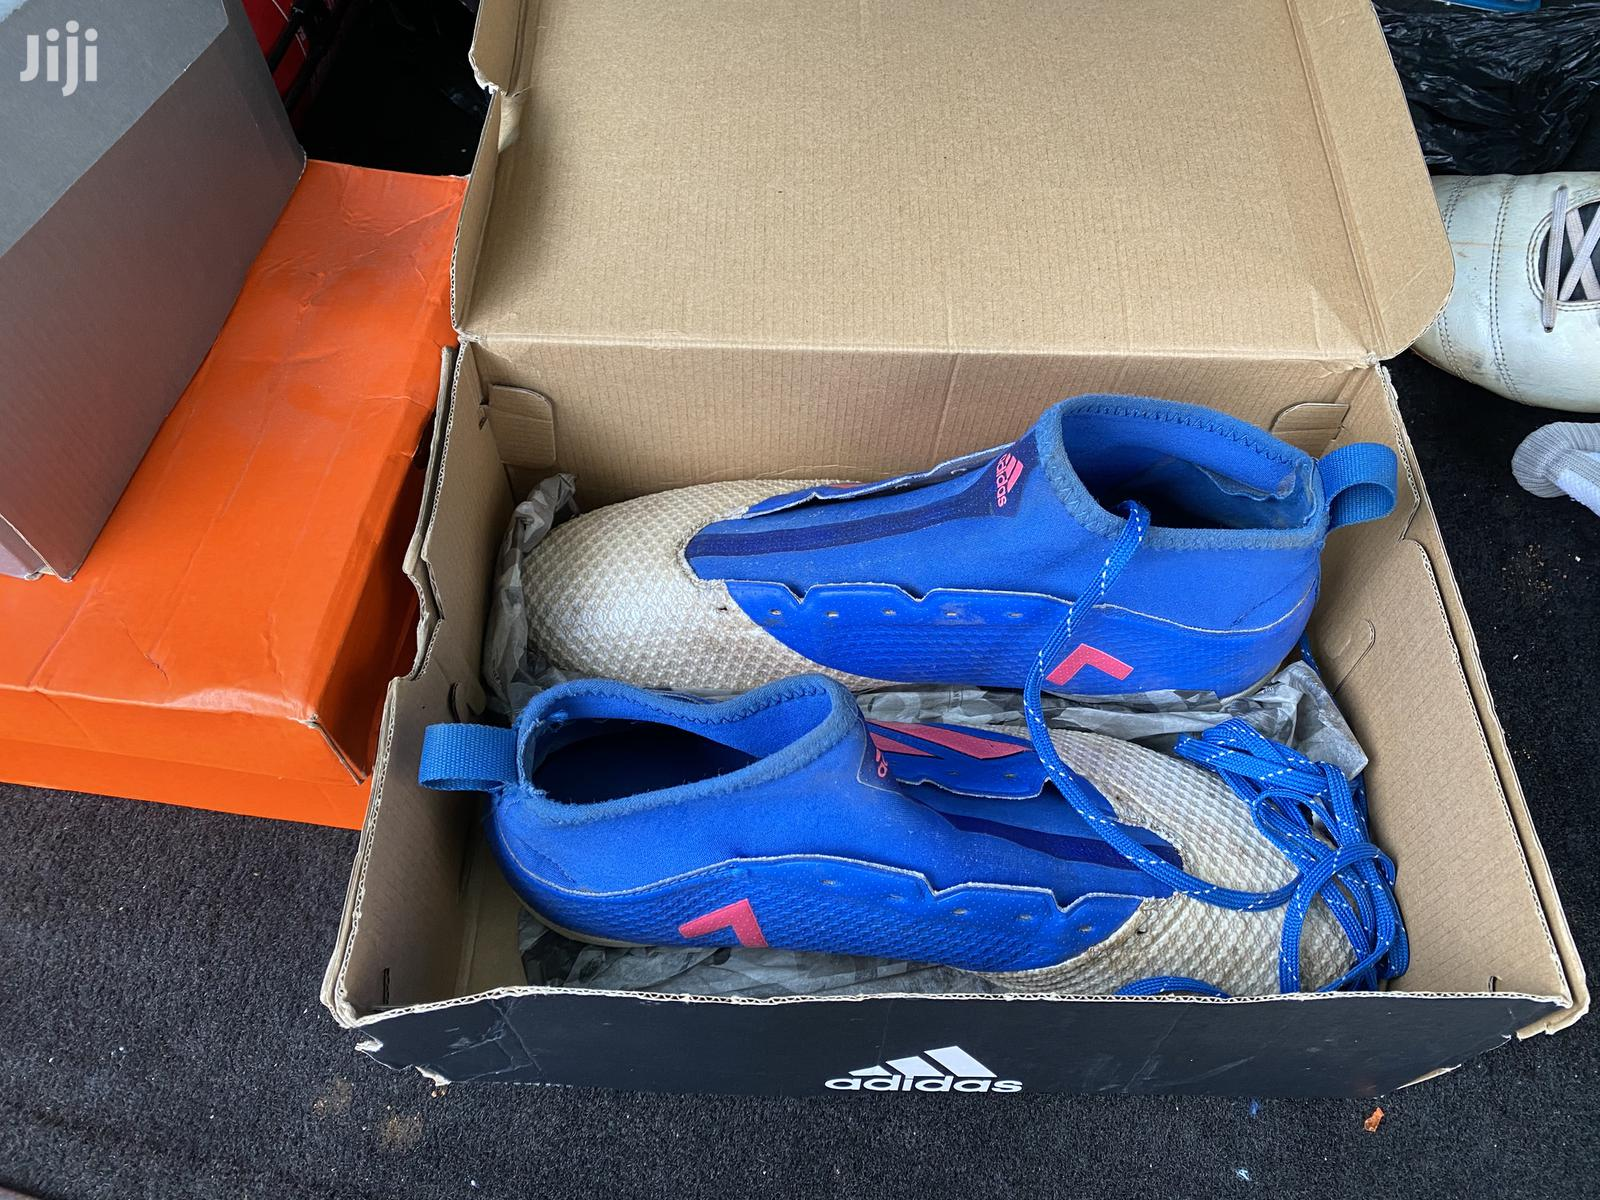 Soccer Football Boots For Adults Size 44   Shoes for sale in Dansoman, Greater Accra, Ghana